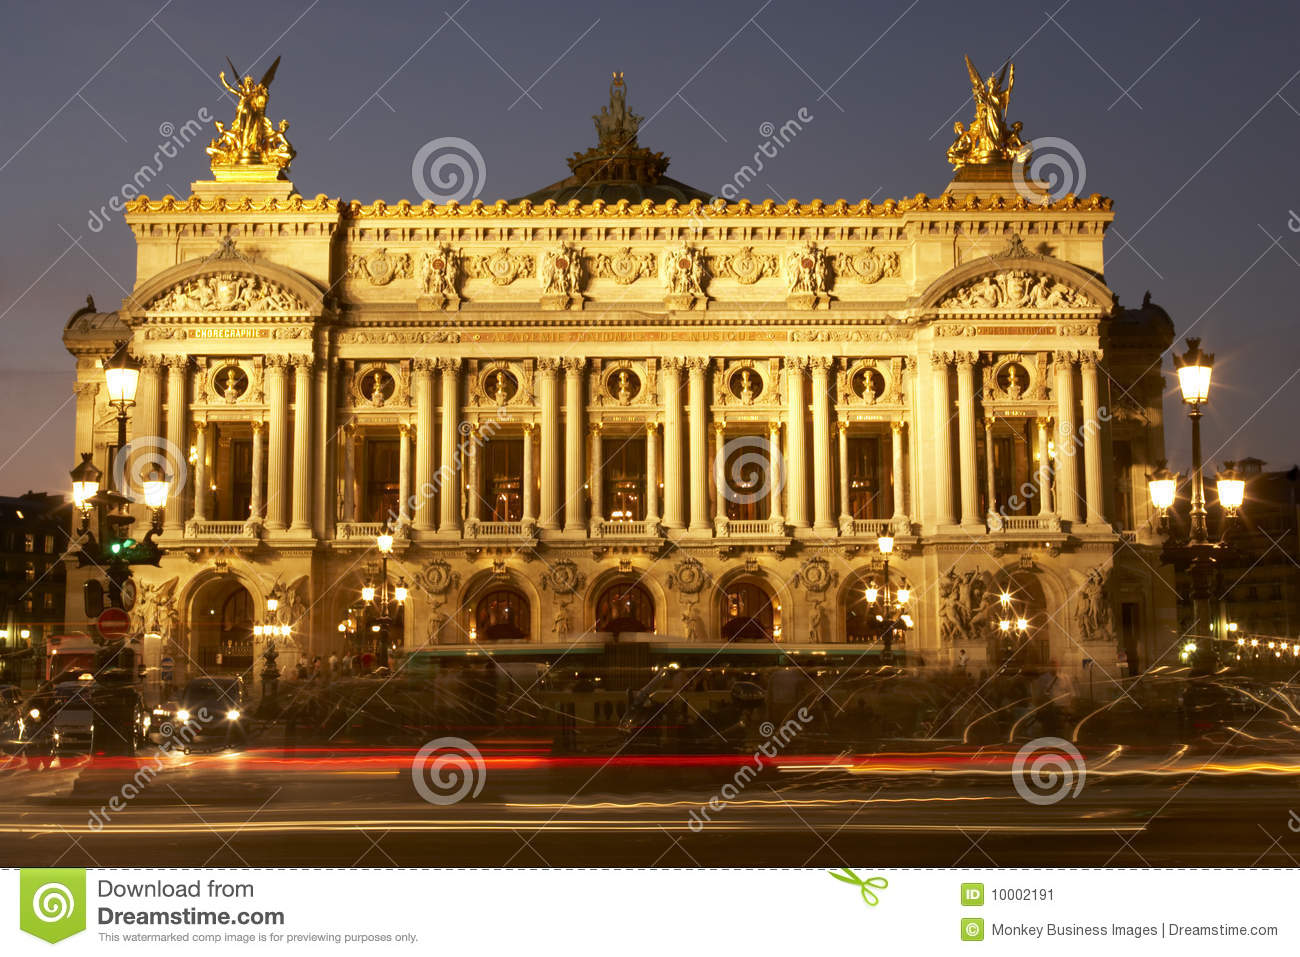 Stock Image Exterior Paris Opera House Night Image10002191 in addition Stock Photos Lolly Shop Colourful Lollies Display La Boqueria Food Markets Barcelona Spain Image32005053 likewise Project 29 further 8h8n06 in addition Advices For Designing Luxury Majlis By Algedra Interior Desig. on palace exterior design